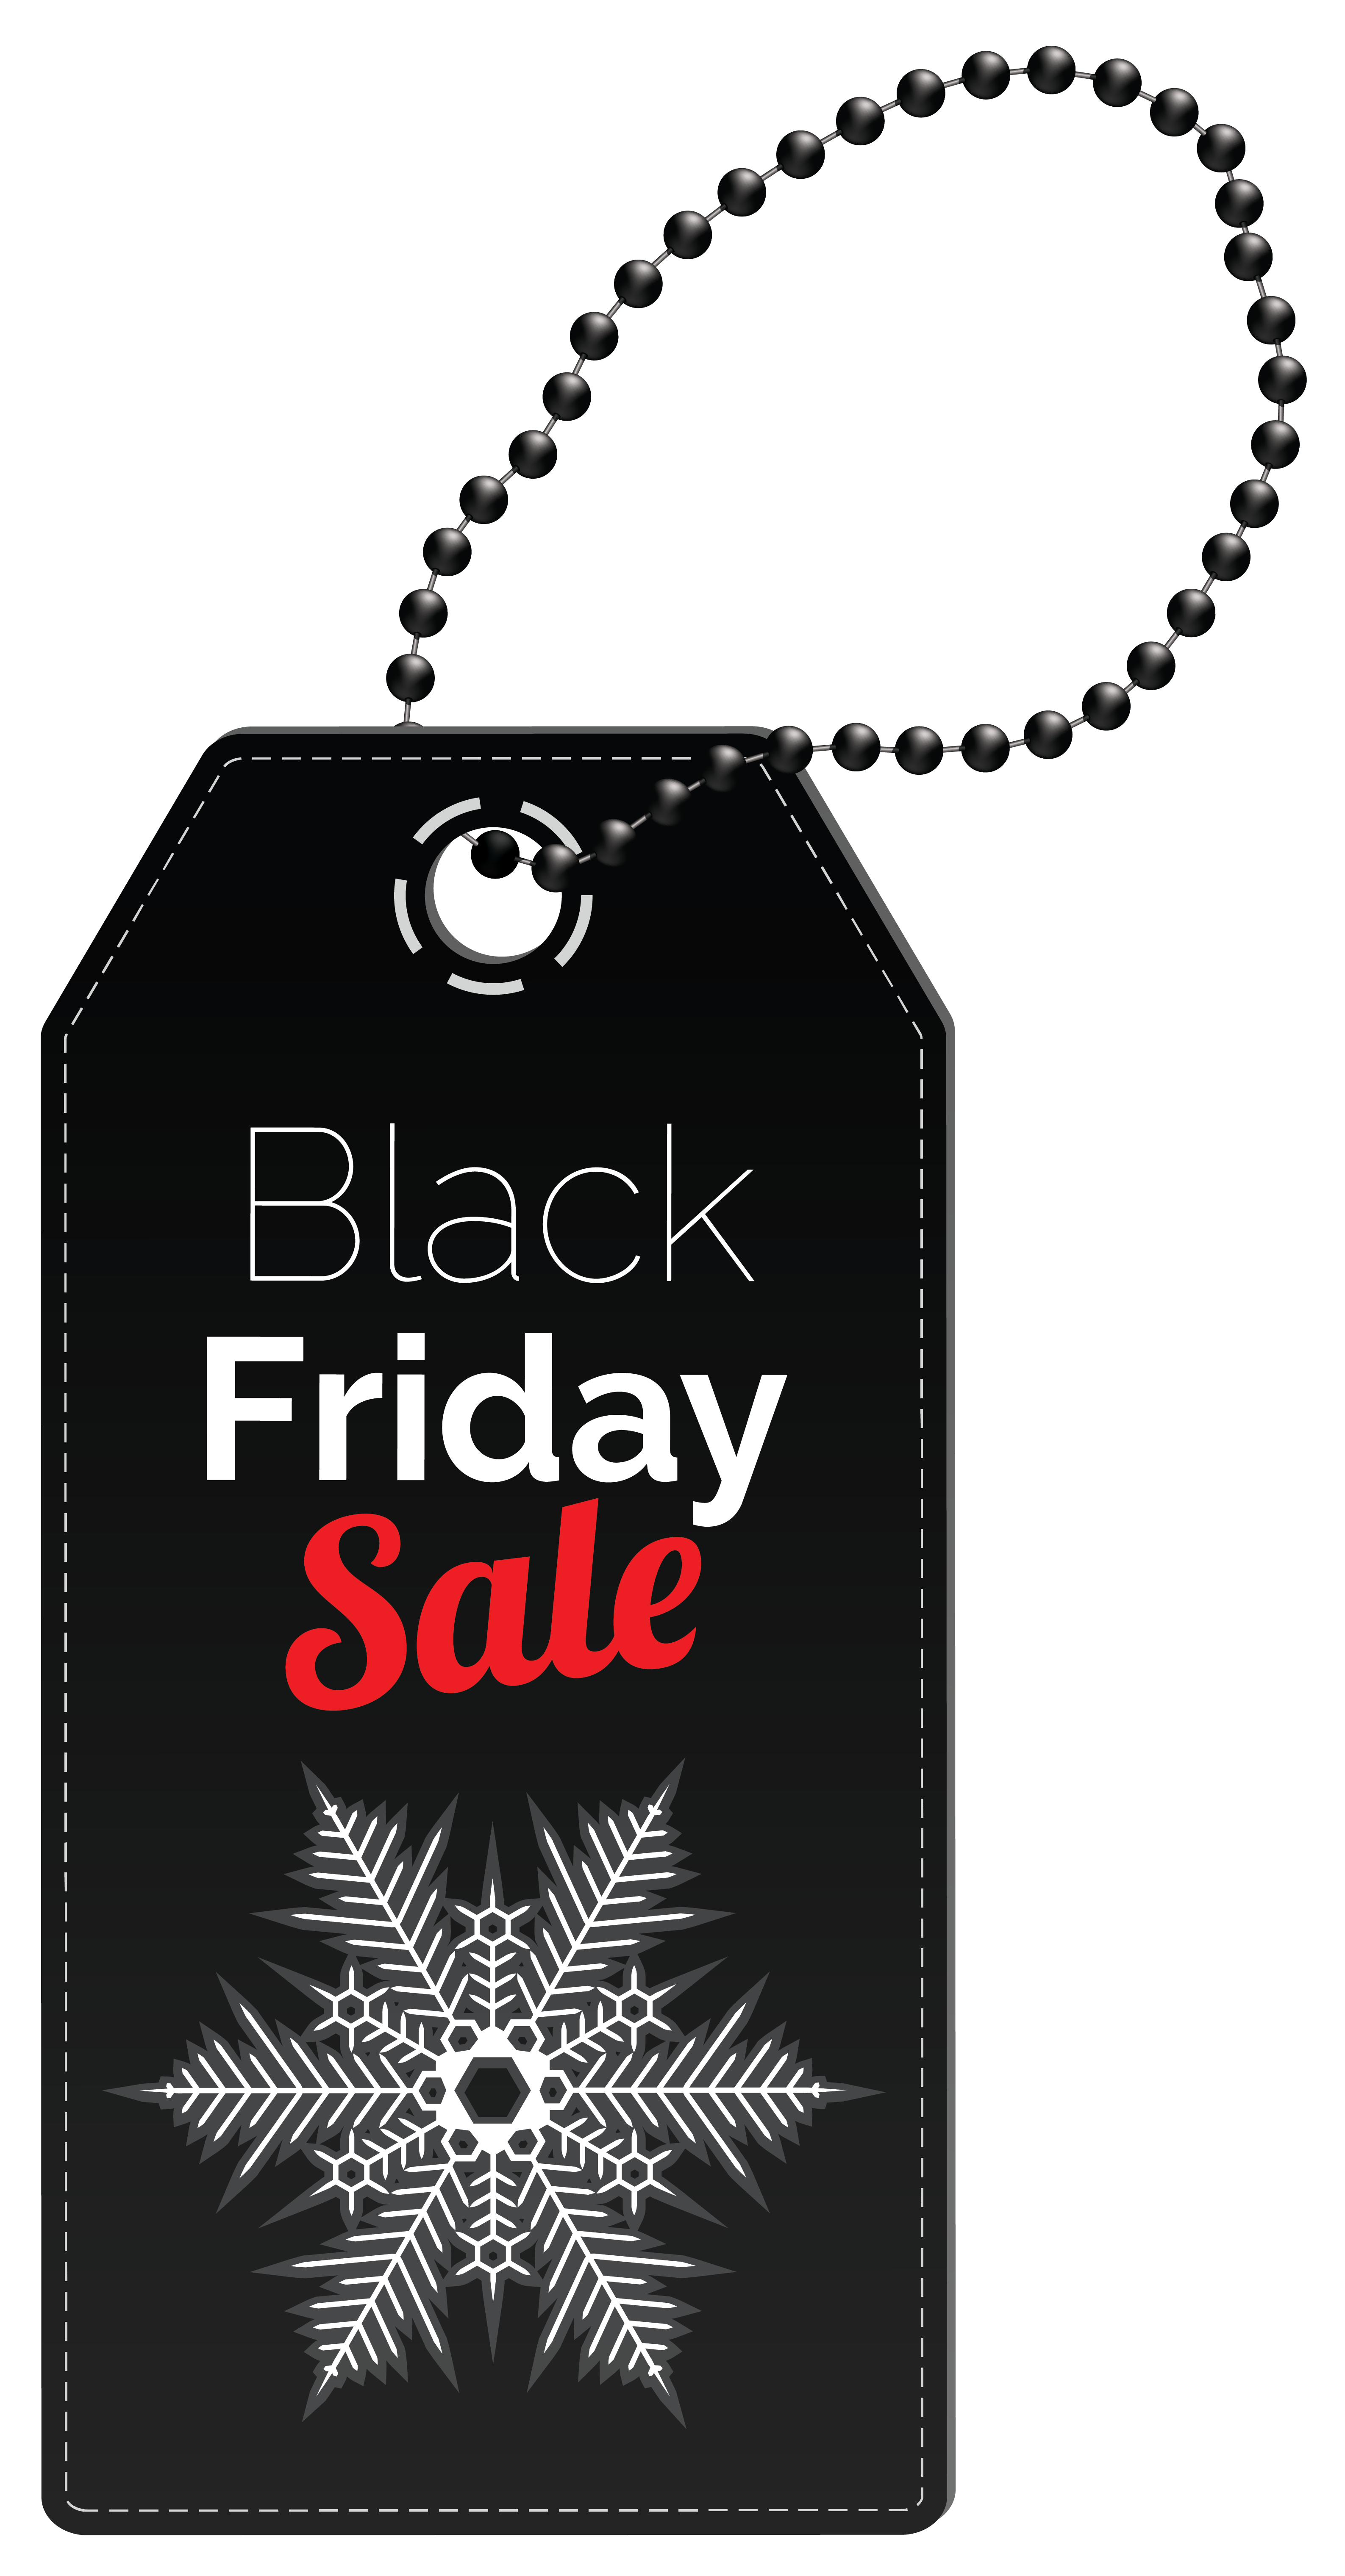 Black Friday Sale Tag PNG Clipart Image.